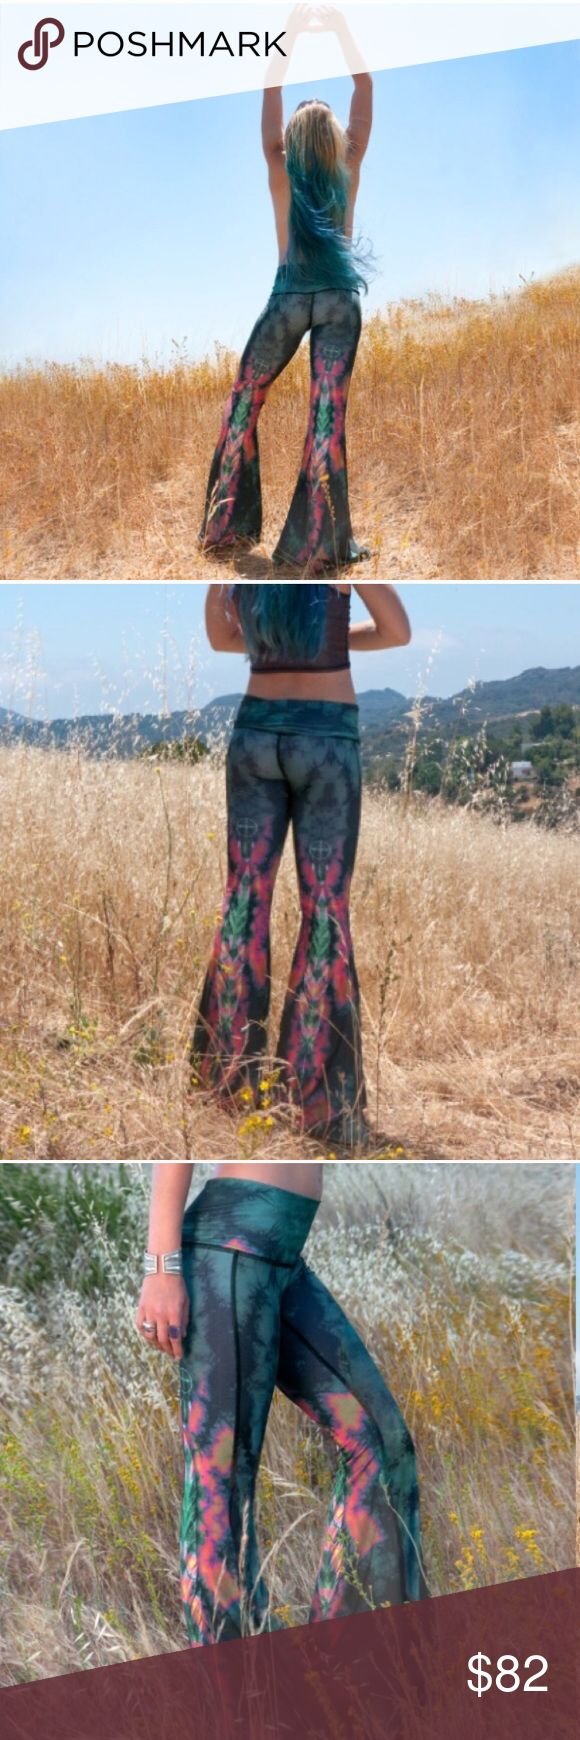 Urban Outfitters Teeki Eagle Feather Bell bottoms These yoga pants are the most eye-catching and badass yoga pants out there. I wound up wearing my first pair to festivals and food truck Fridays in the park more than practicing yoga. Perfect for the boho-chic active rocker chick. They have a high or low waist band option and I love them because they have a seamless effect that will not cut into your skin or create rolls. Brand-new with tags, this is my second pair. Rare! As seen on Carbon…